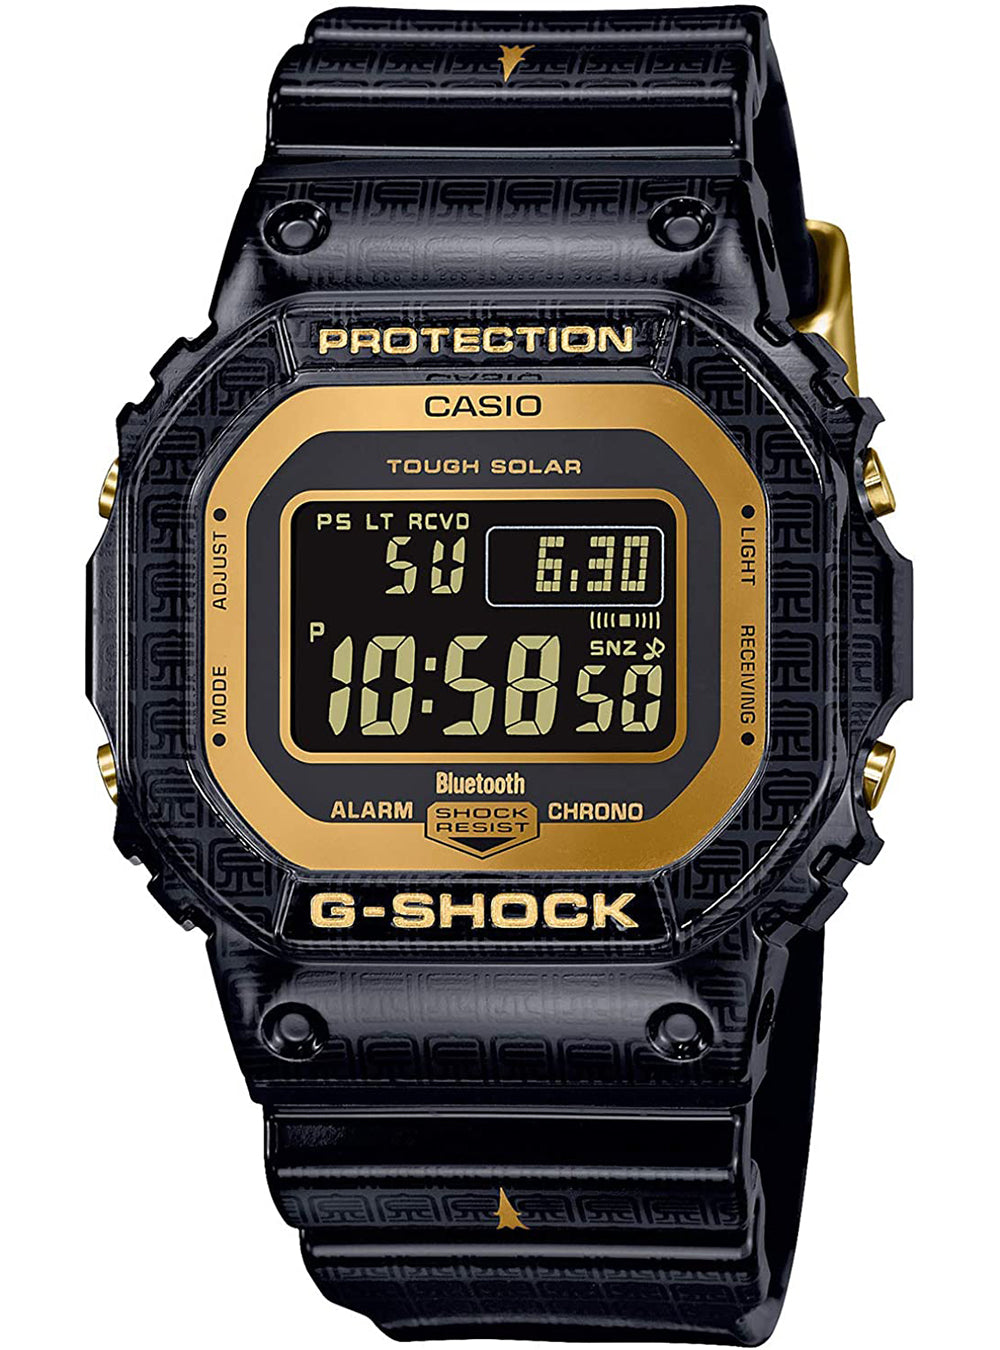 CASIO G-SHOCK The Savage Five Series GW-B5600SGM-1JR LIMITED EDITION JDM